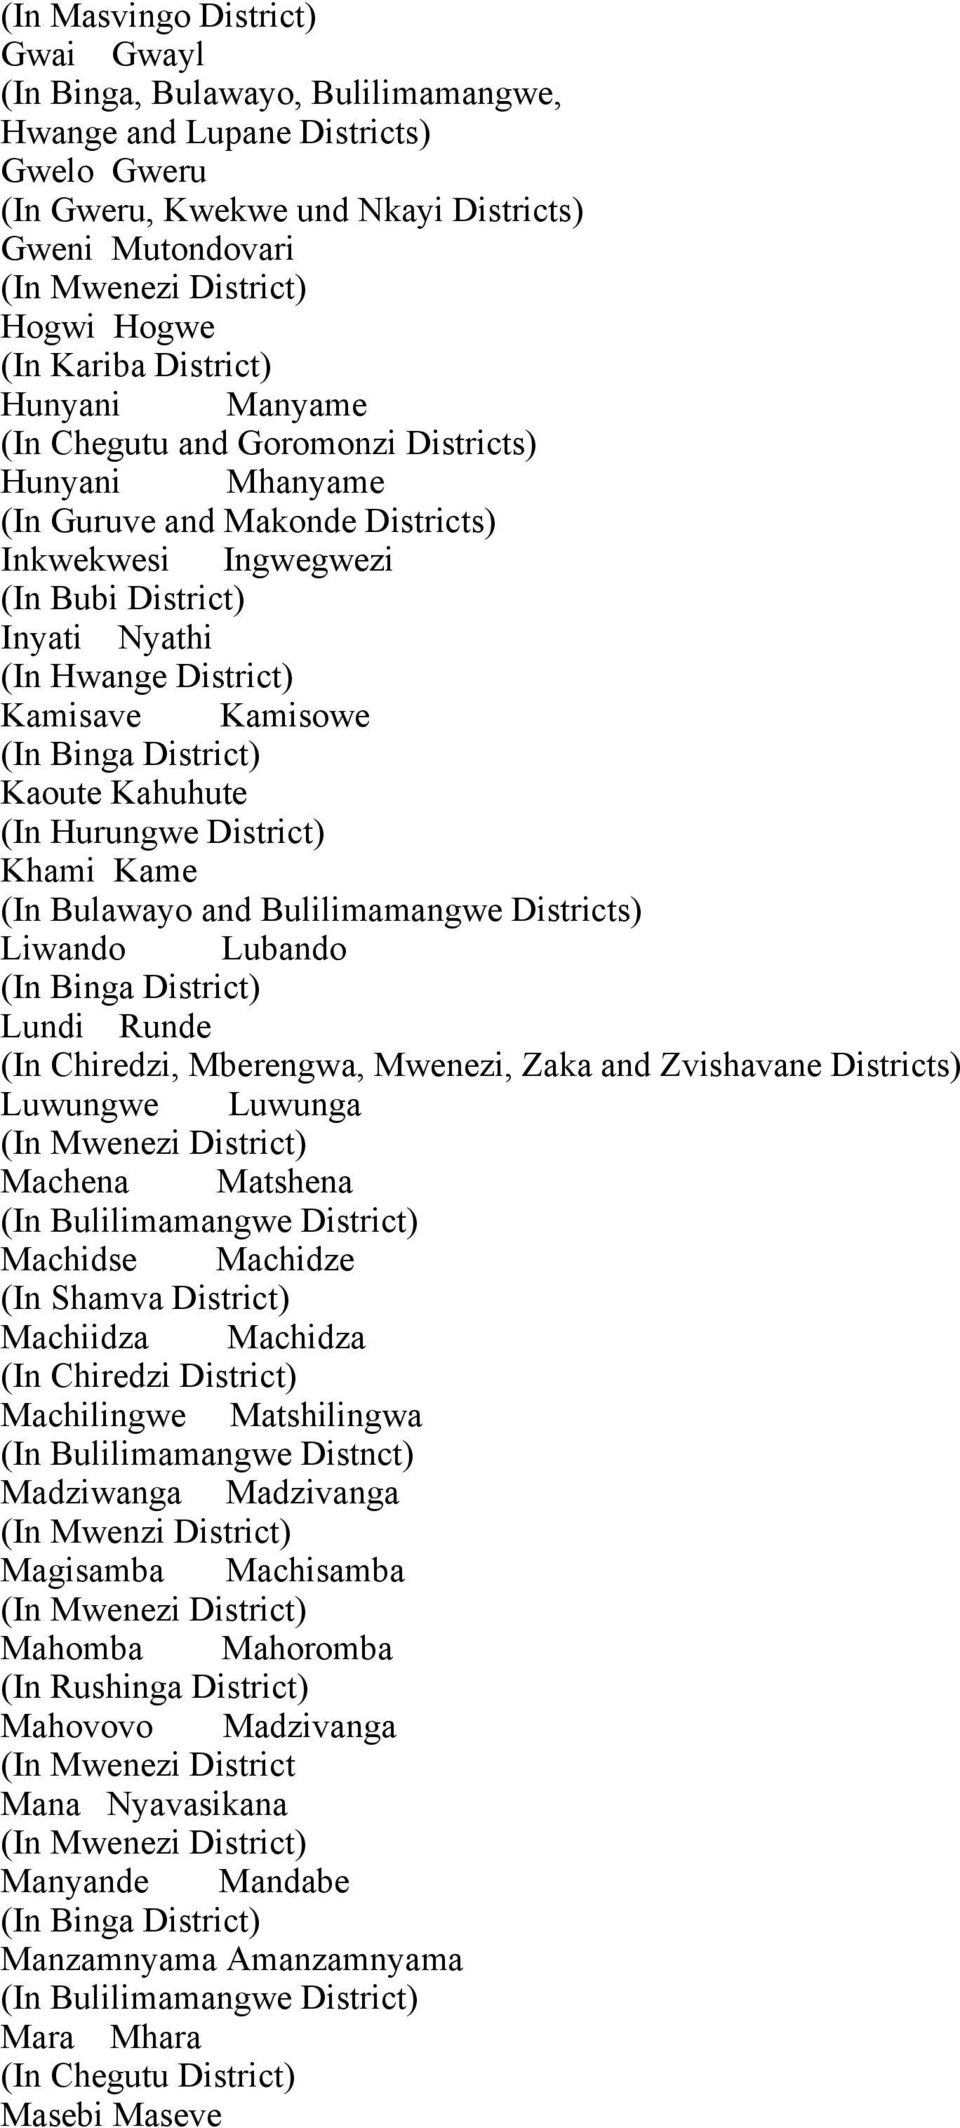 District) Kamisave Kamisowe (In Binga District) Kaoute Kahuhute (In Hurungwe District) Khami Kame (In Bulawayo and Bulilimamangwe Districts) Liwando Lubando (In Binga District) Lundi Runde (In